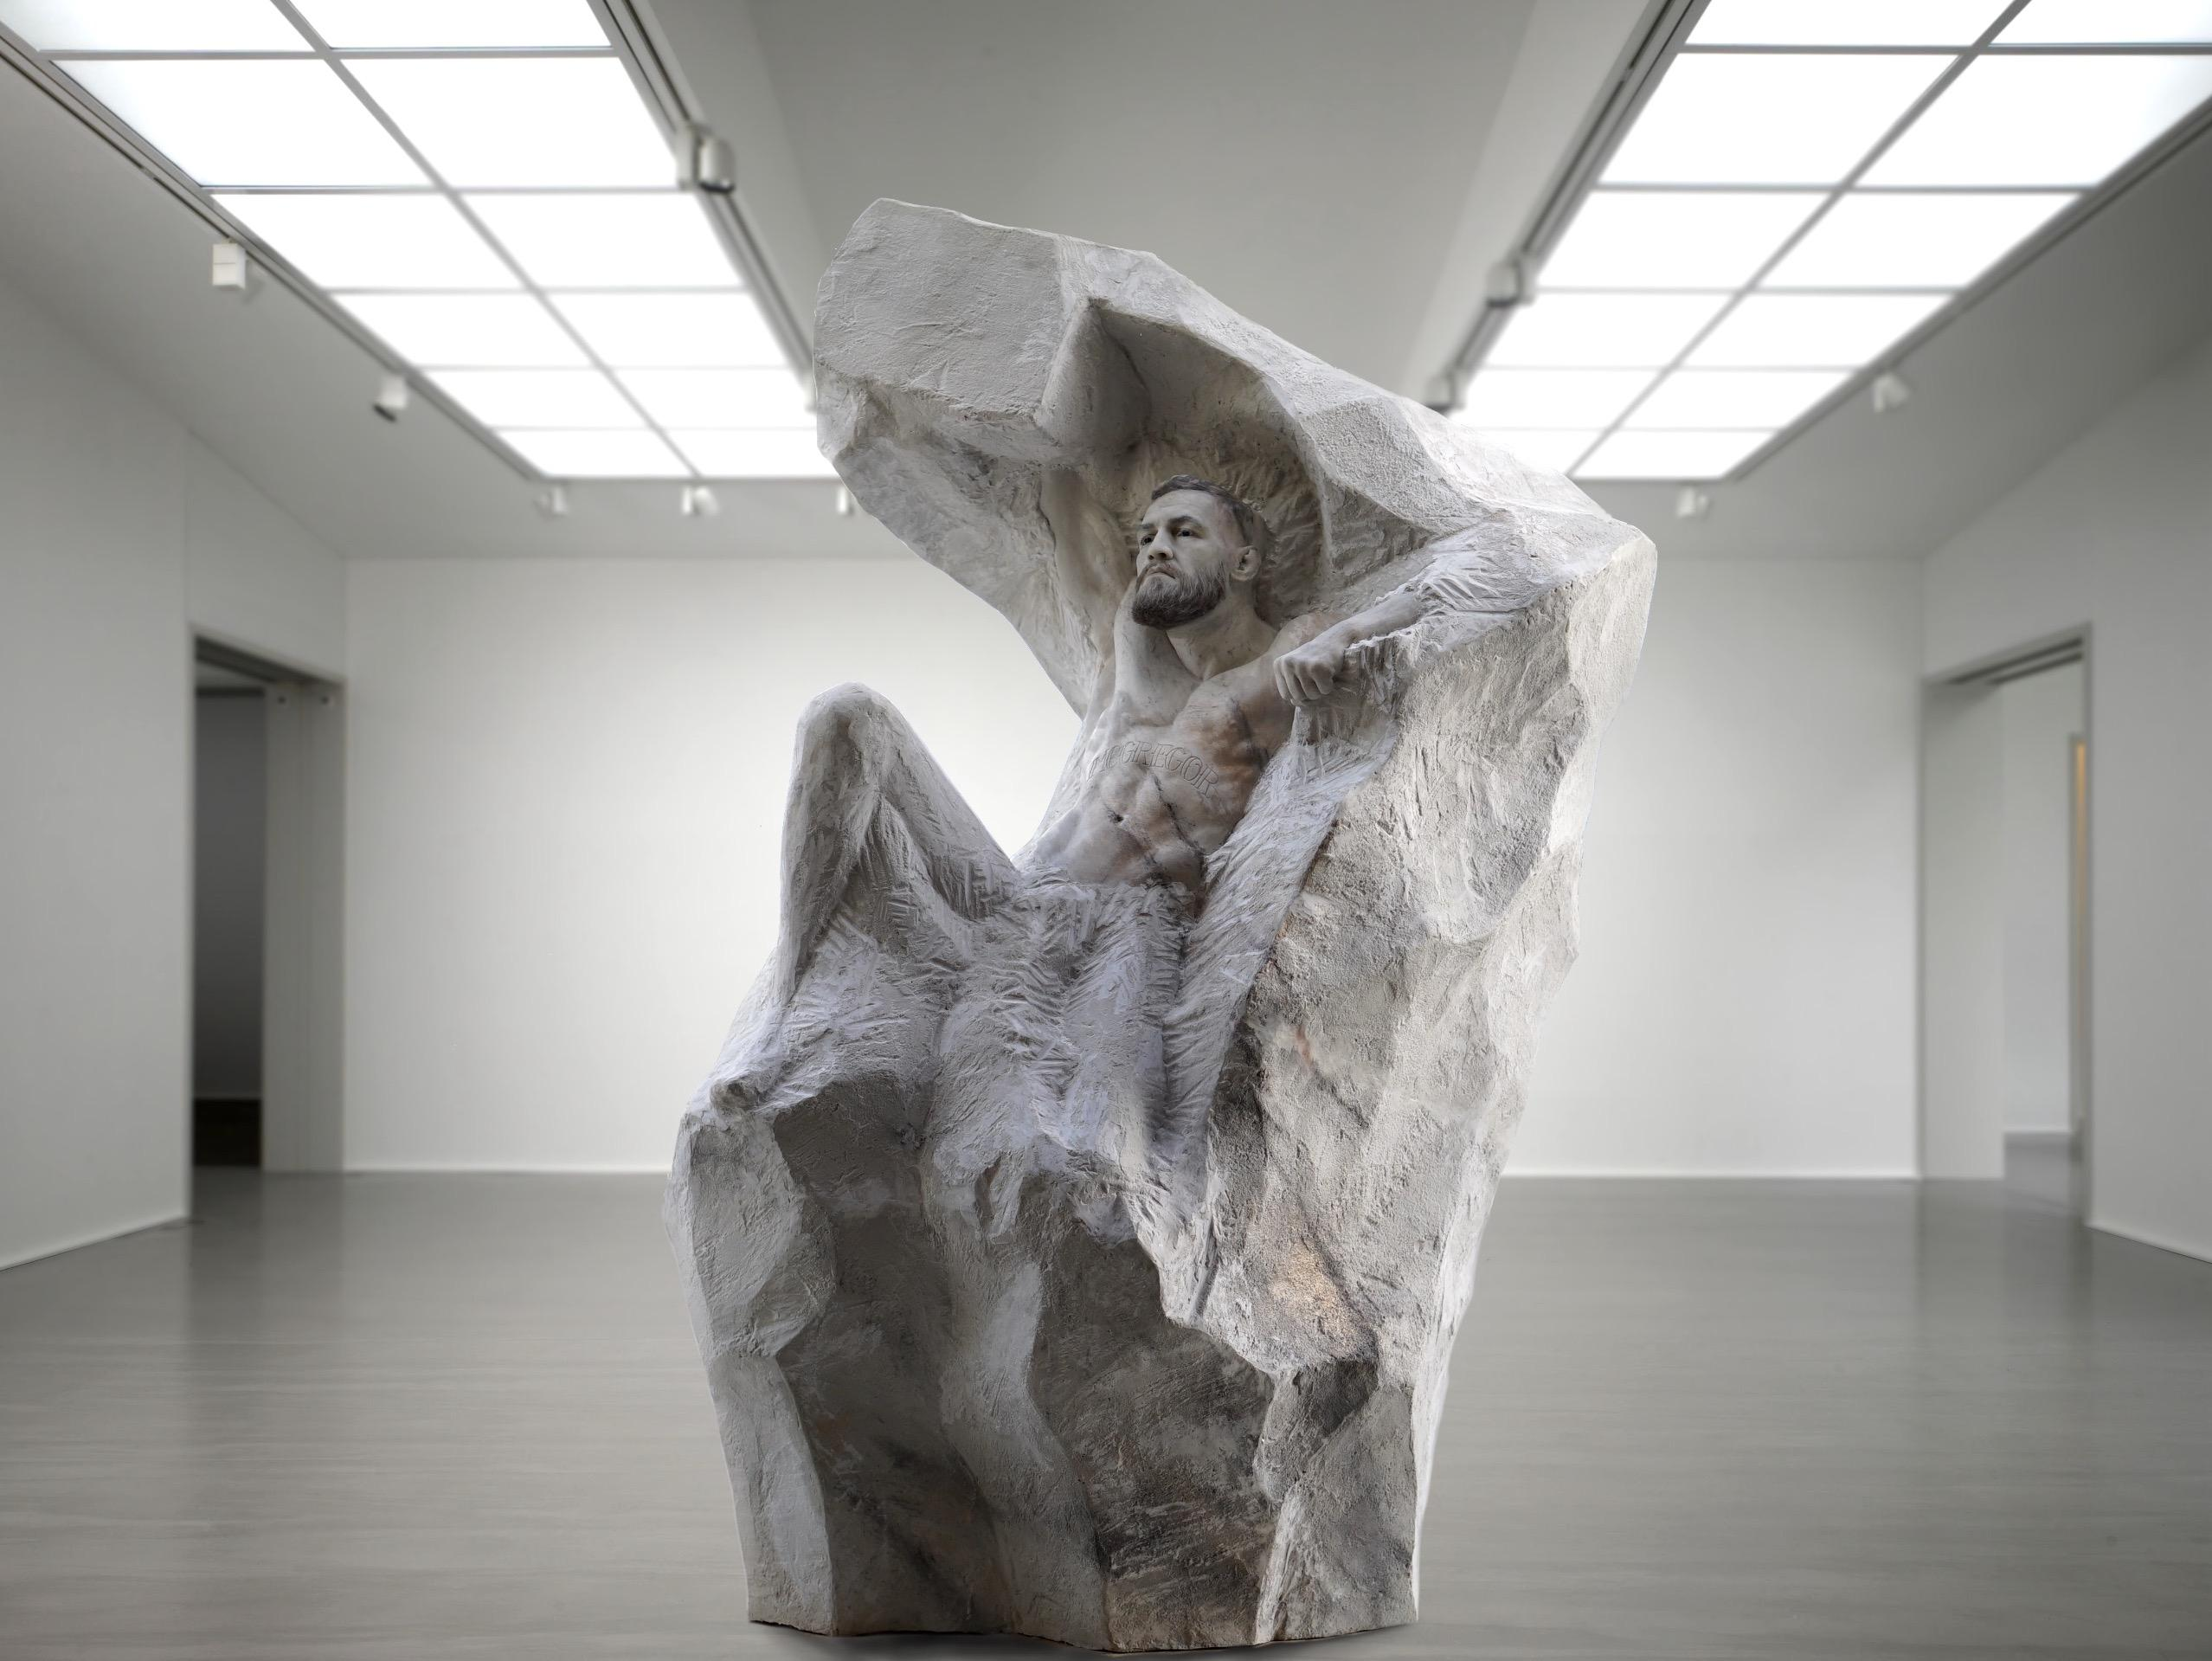 The sculpture will be on show from July 14, the UFC man's birthday, until September 30 in London